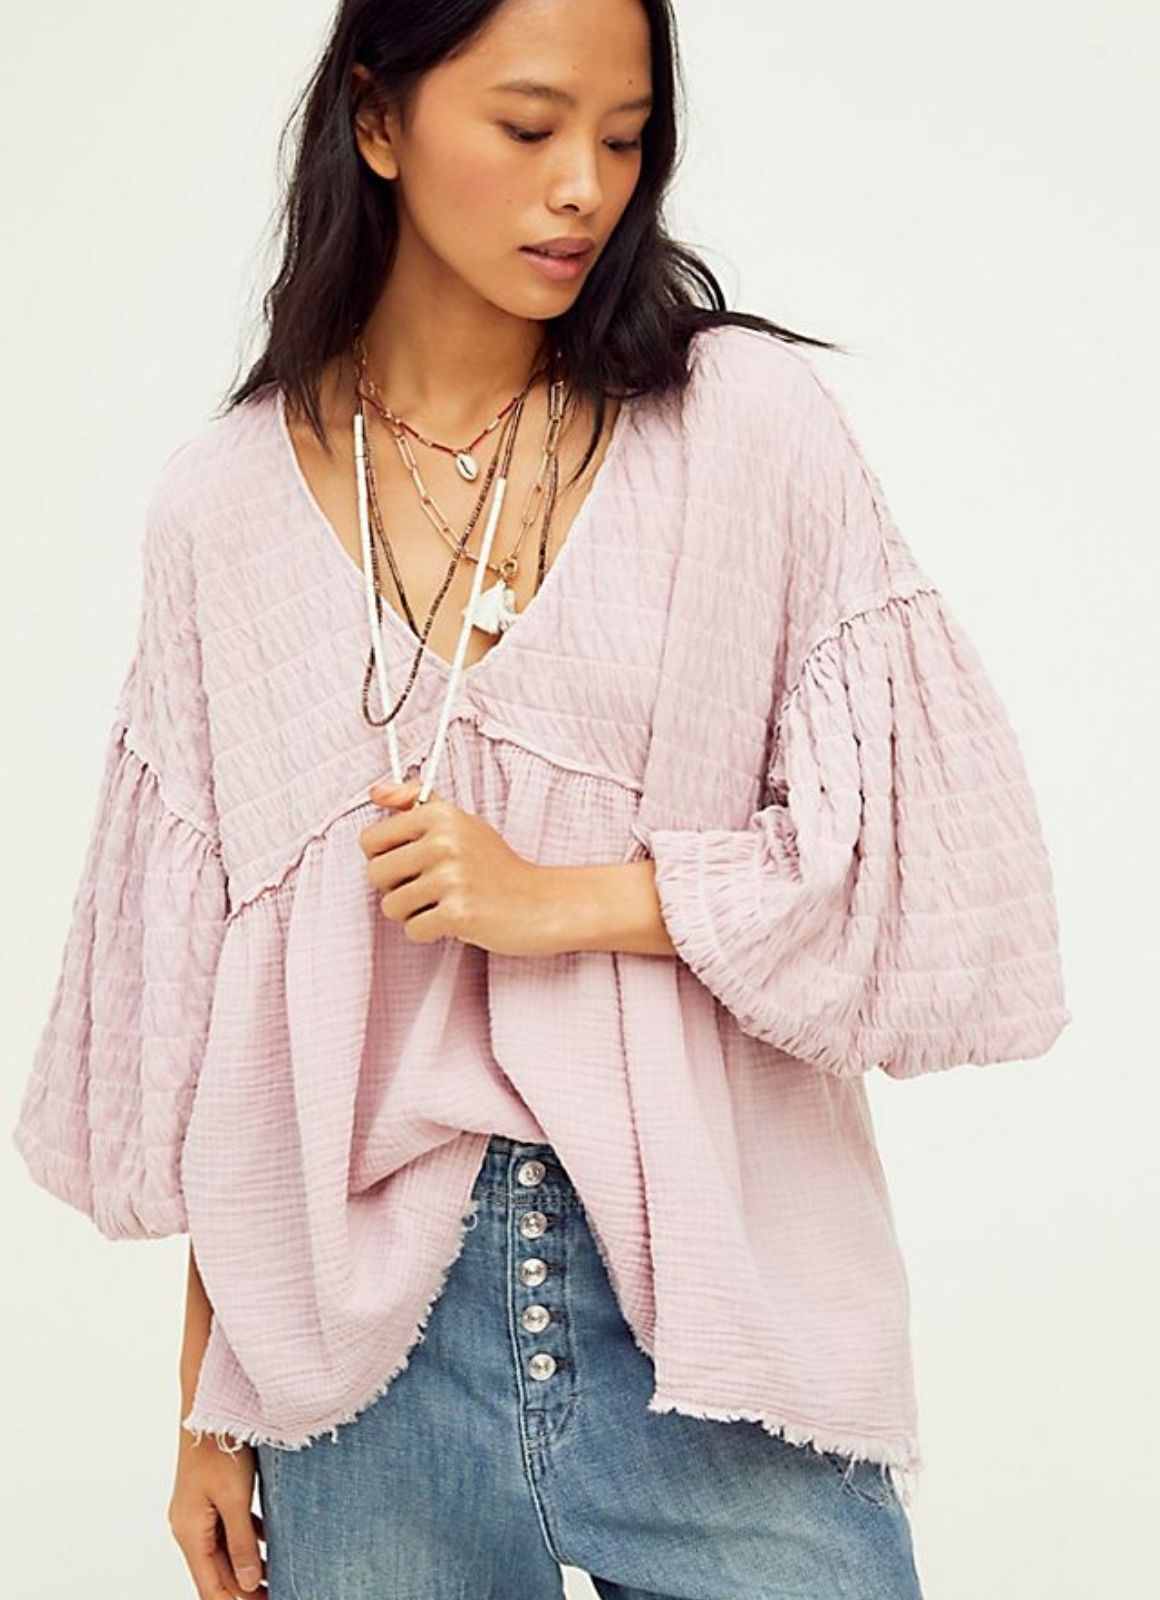 Free People - Flower Power Top